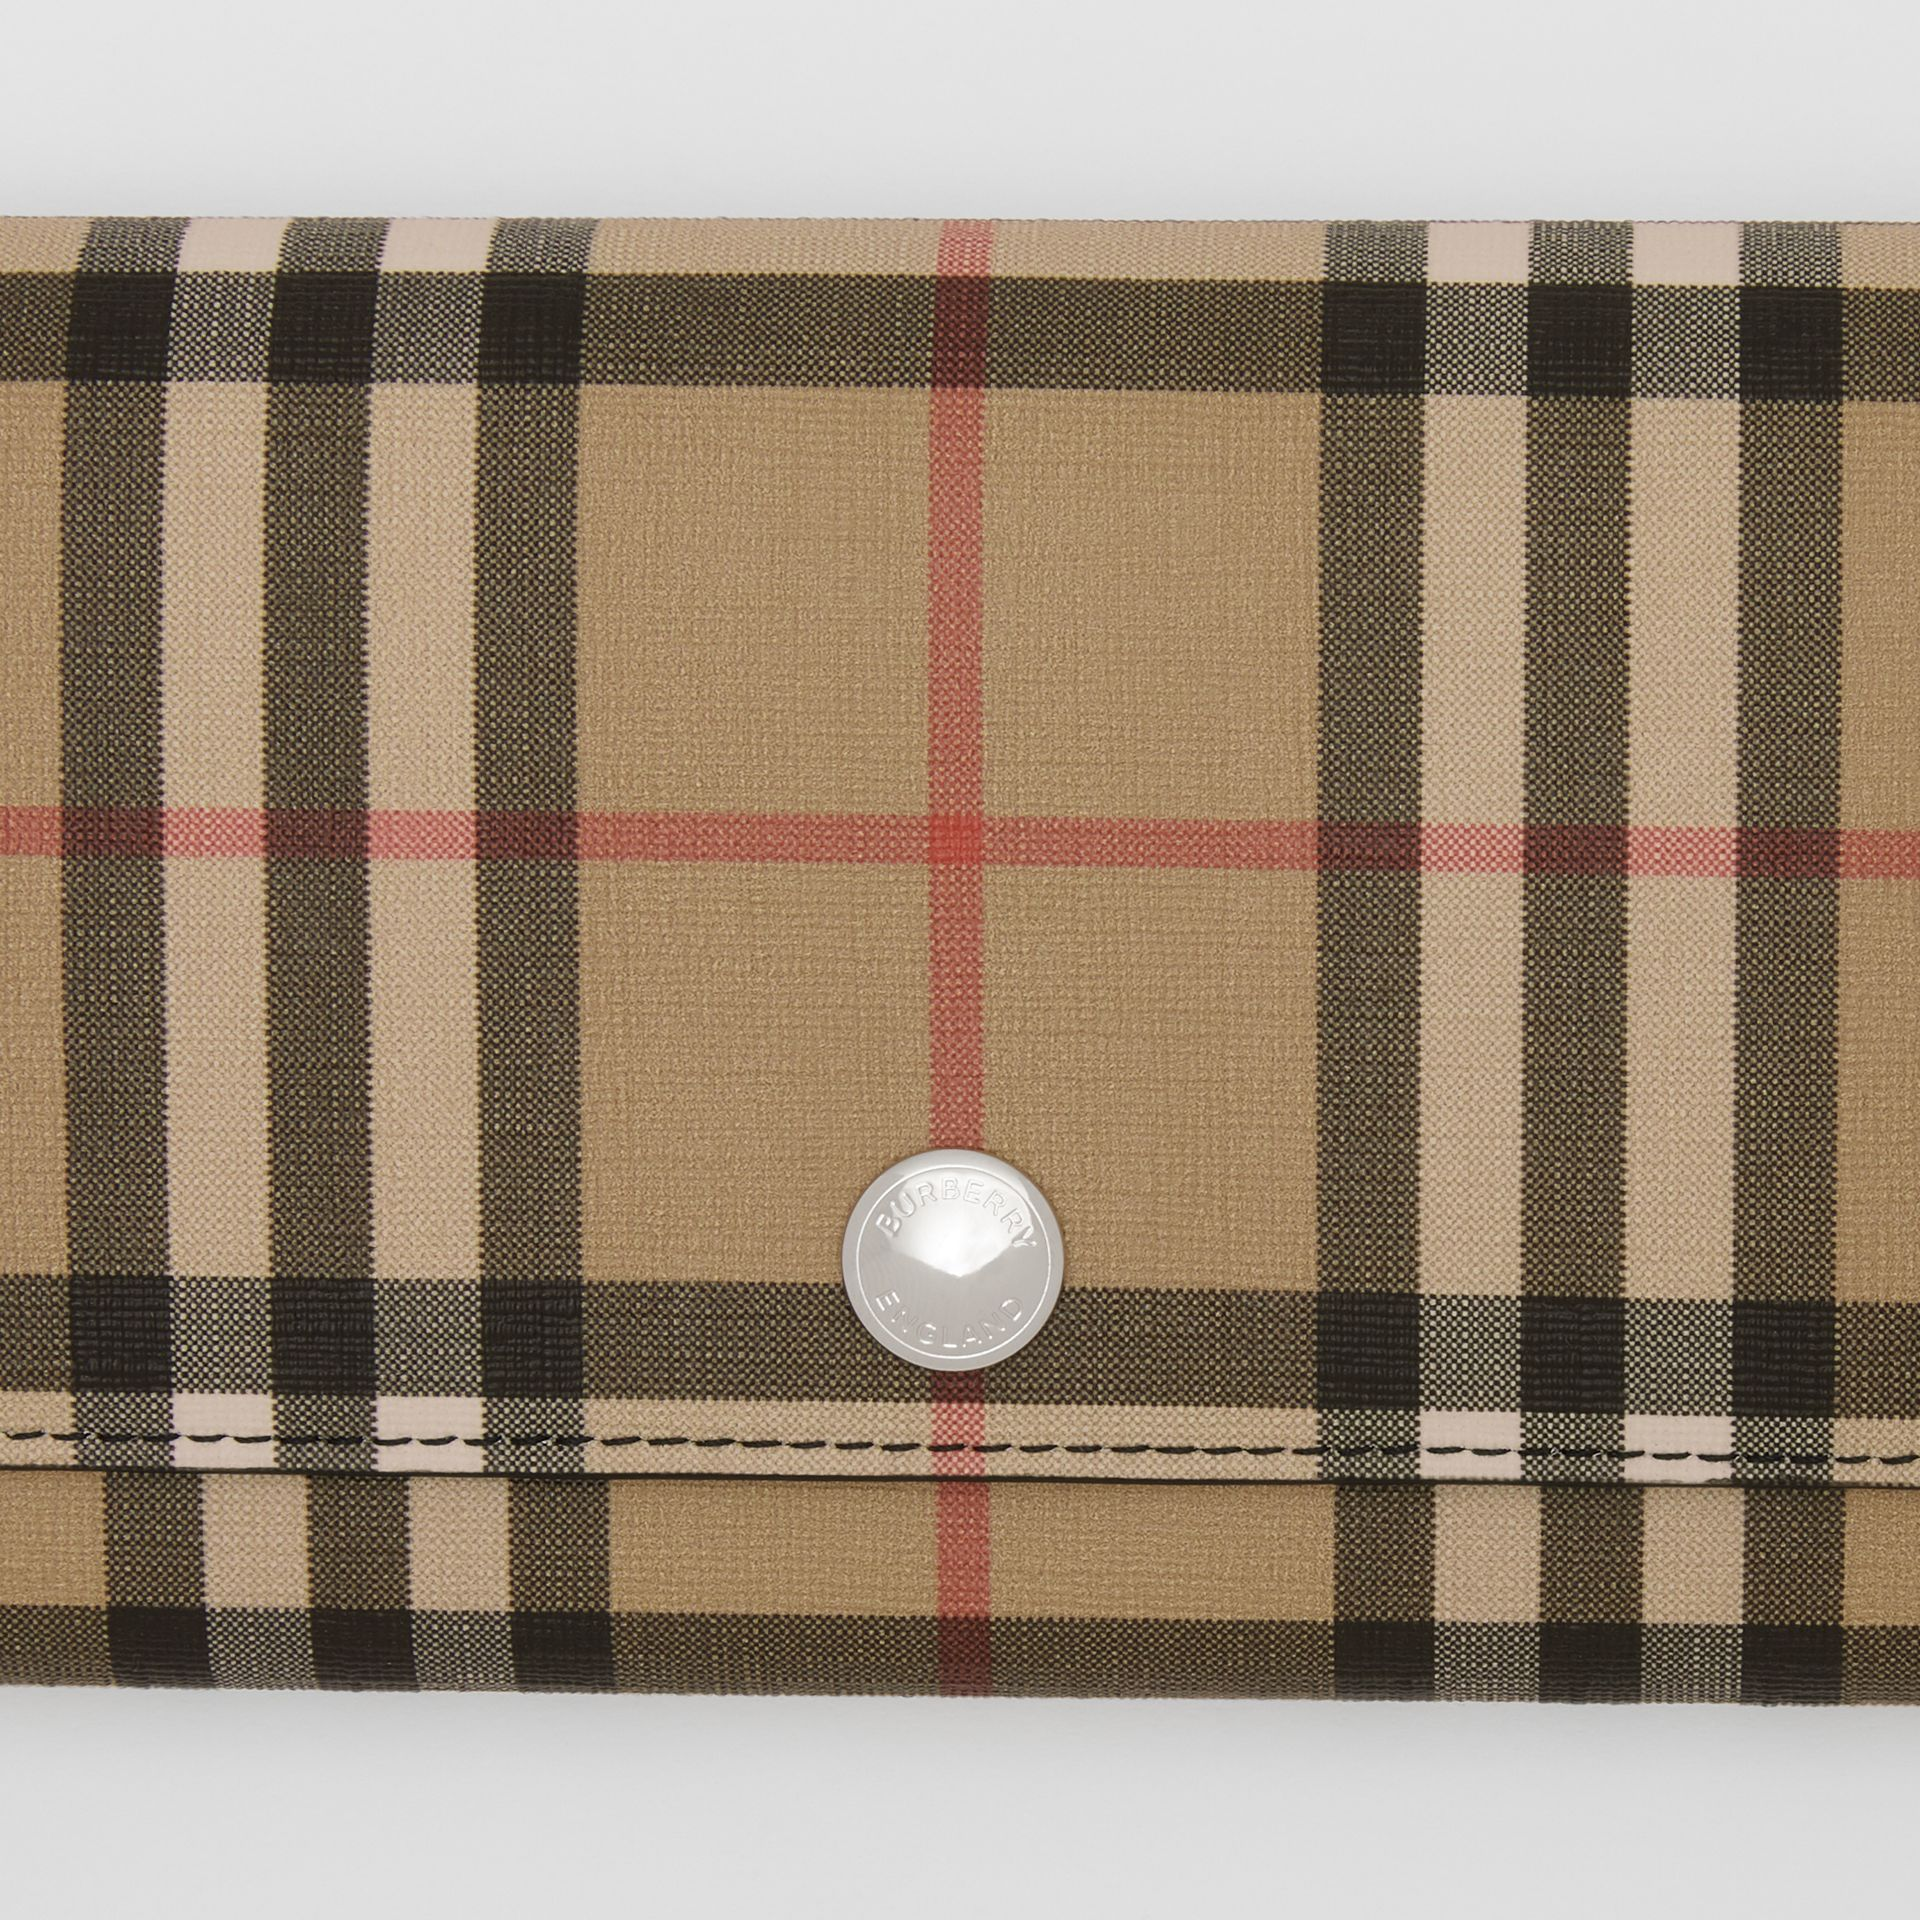 Vintage Check E-canvas Continental Wallet in Black - Women | Burberry - gallery image 1